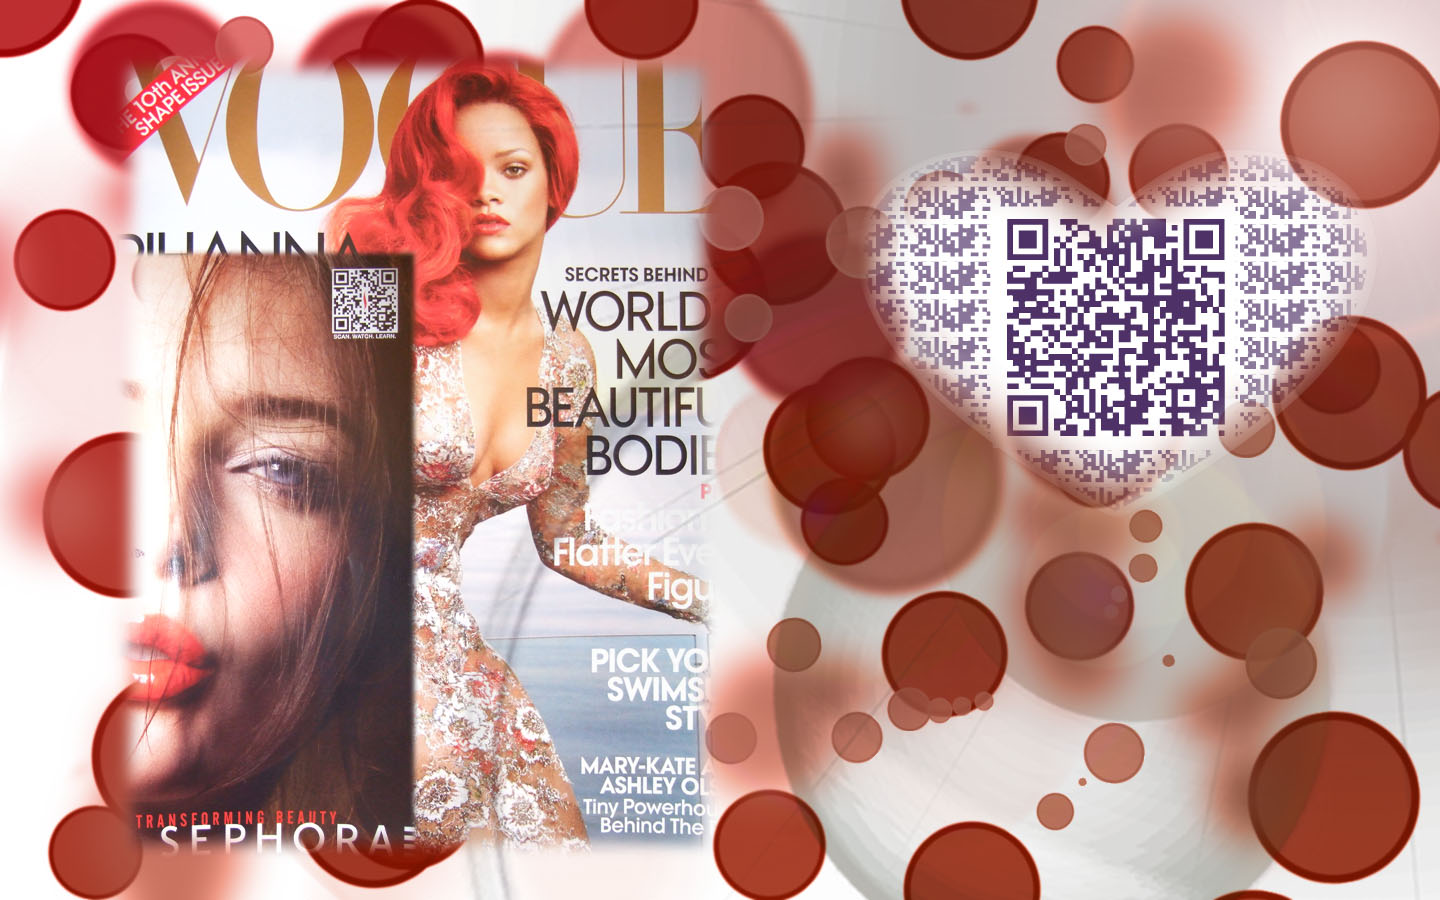 Qr-code-in-illustrator-for-fashion-designer